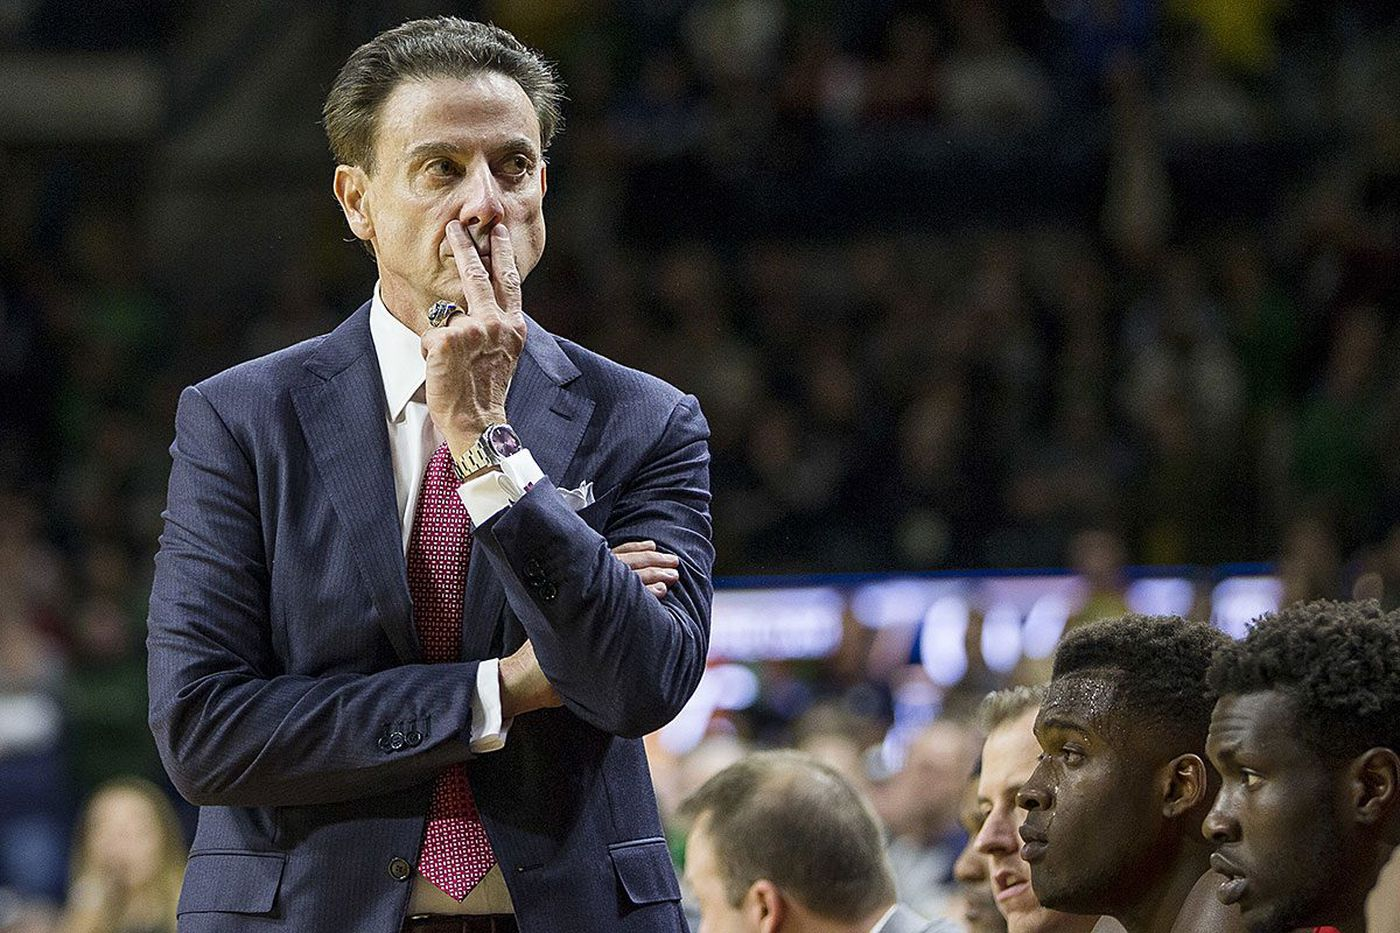 Rick Pitino is out, and if your school plays in the big time, be on edge | Mike Jensen